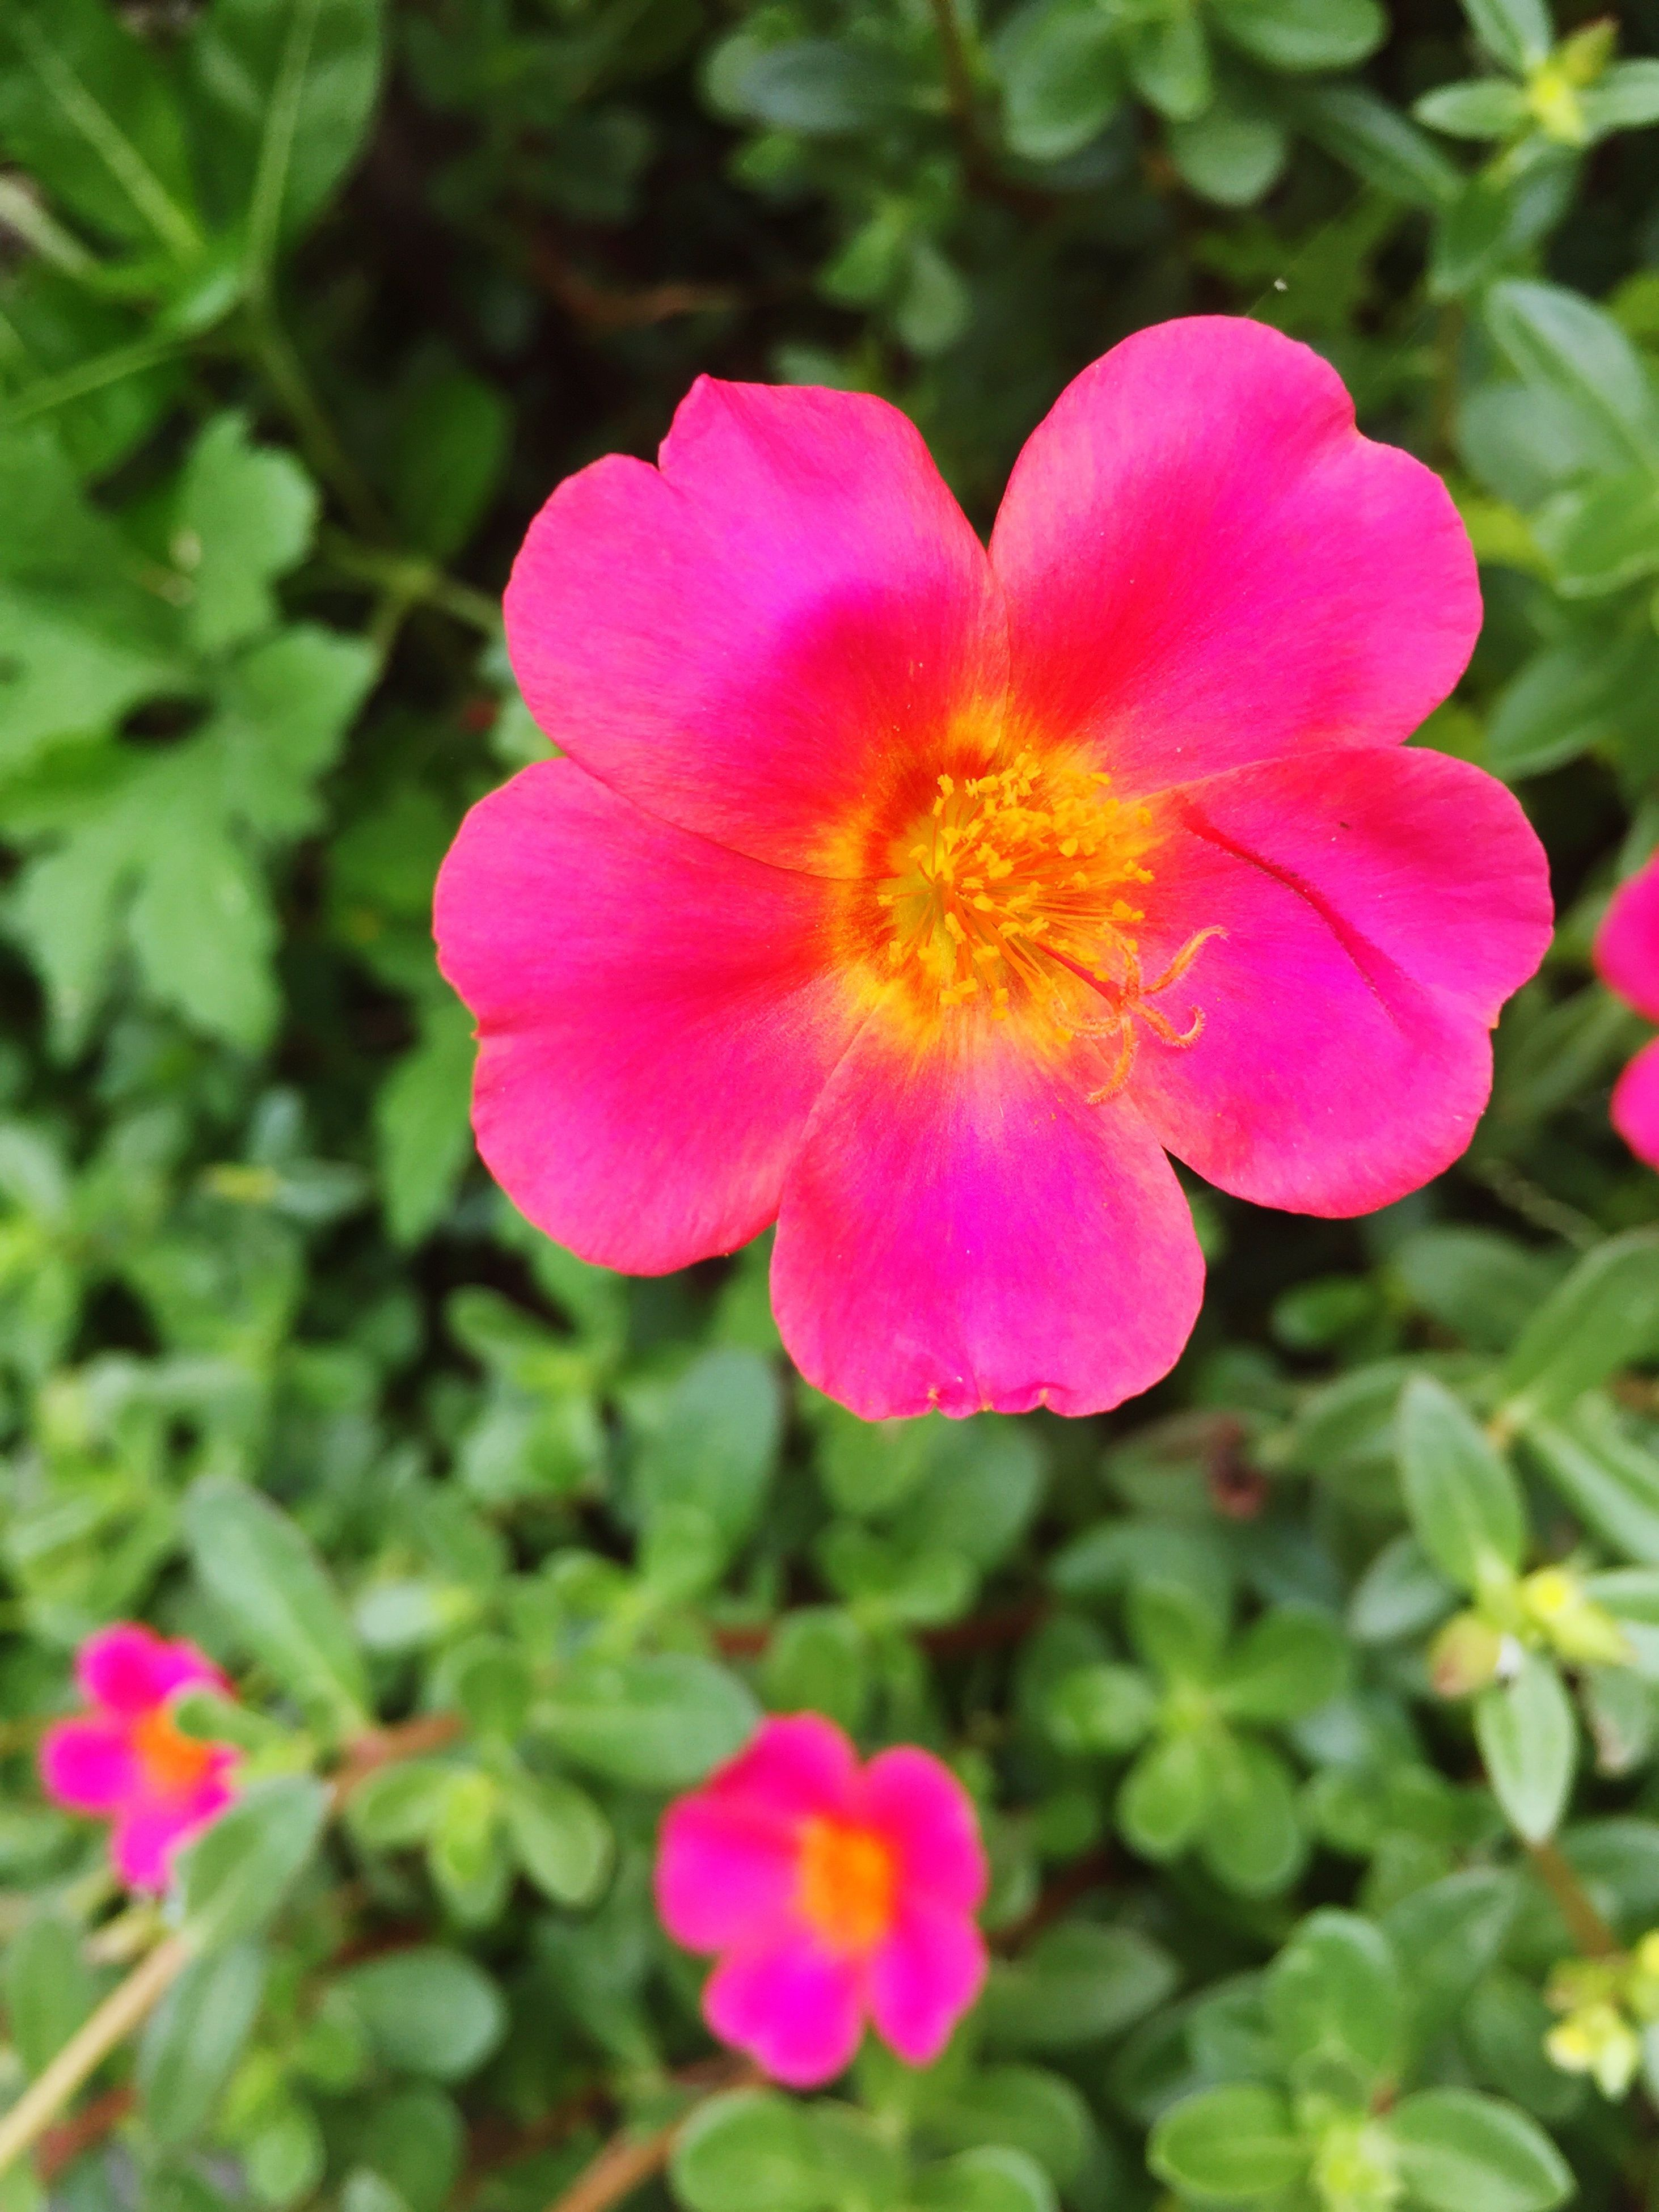 flower, petal, freshness, fragility, flower head, growth, pink color, close-up, beauty in nature, nature, in bloom, springtime, plant, focus on foreground, pink, single flower, blossom, botany, day, outdoors, blooming, vibrant color, focus, no people, green color